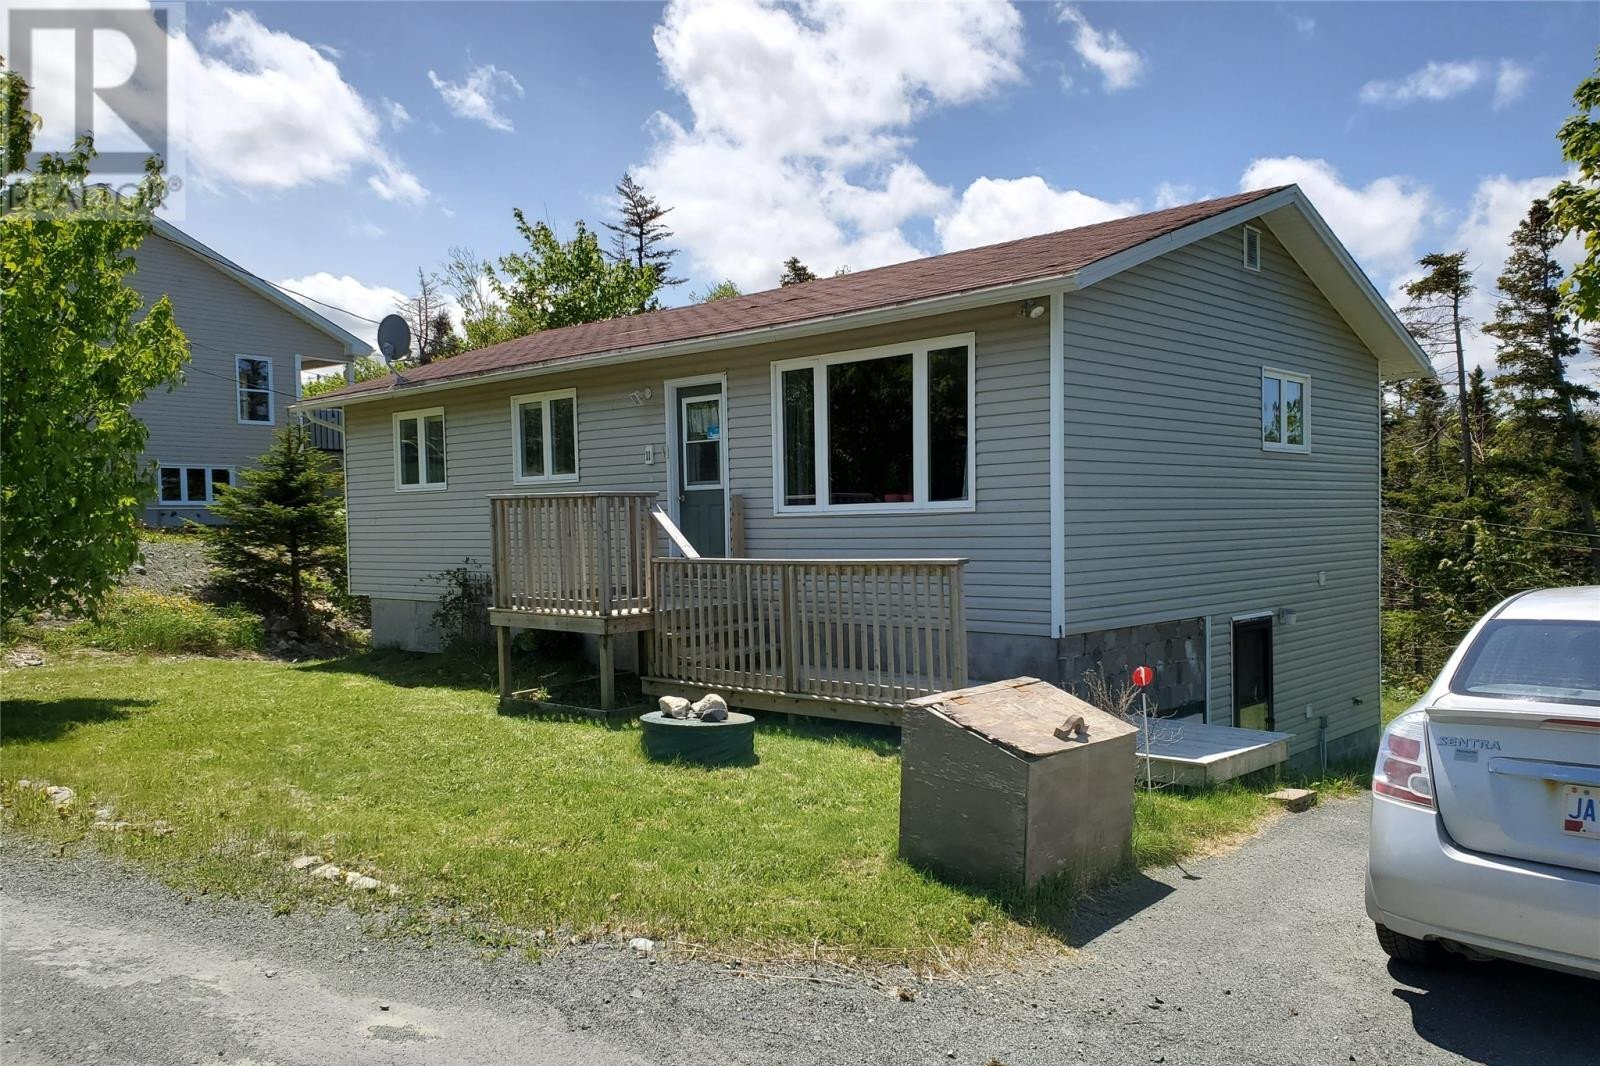 House for sale at 11 Conattie Pl Portugal Cove Newfoundland - MLS: 1223740